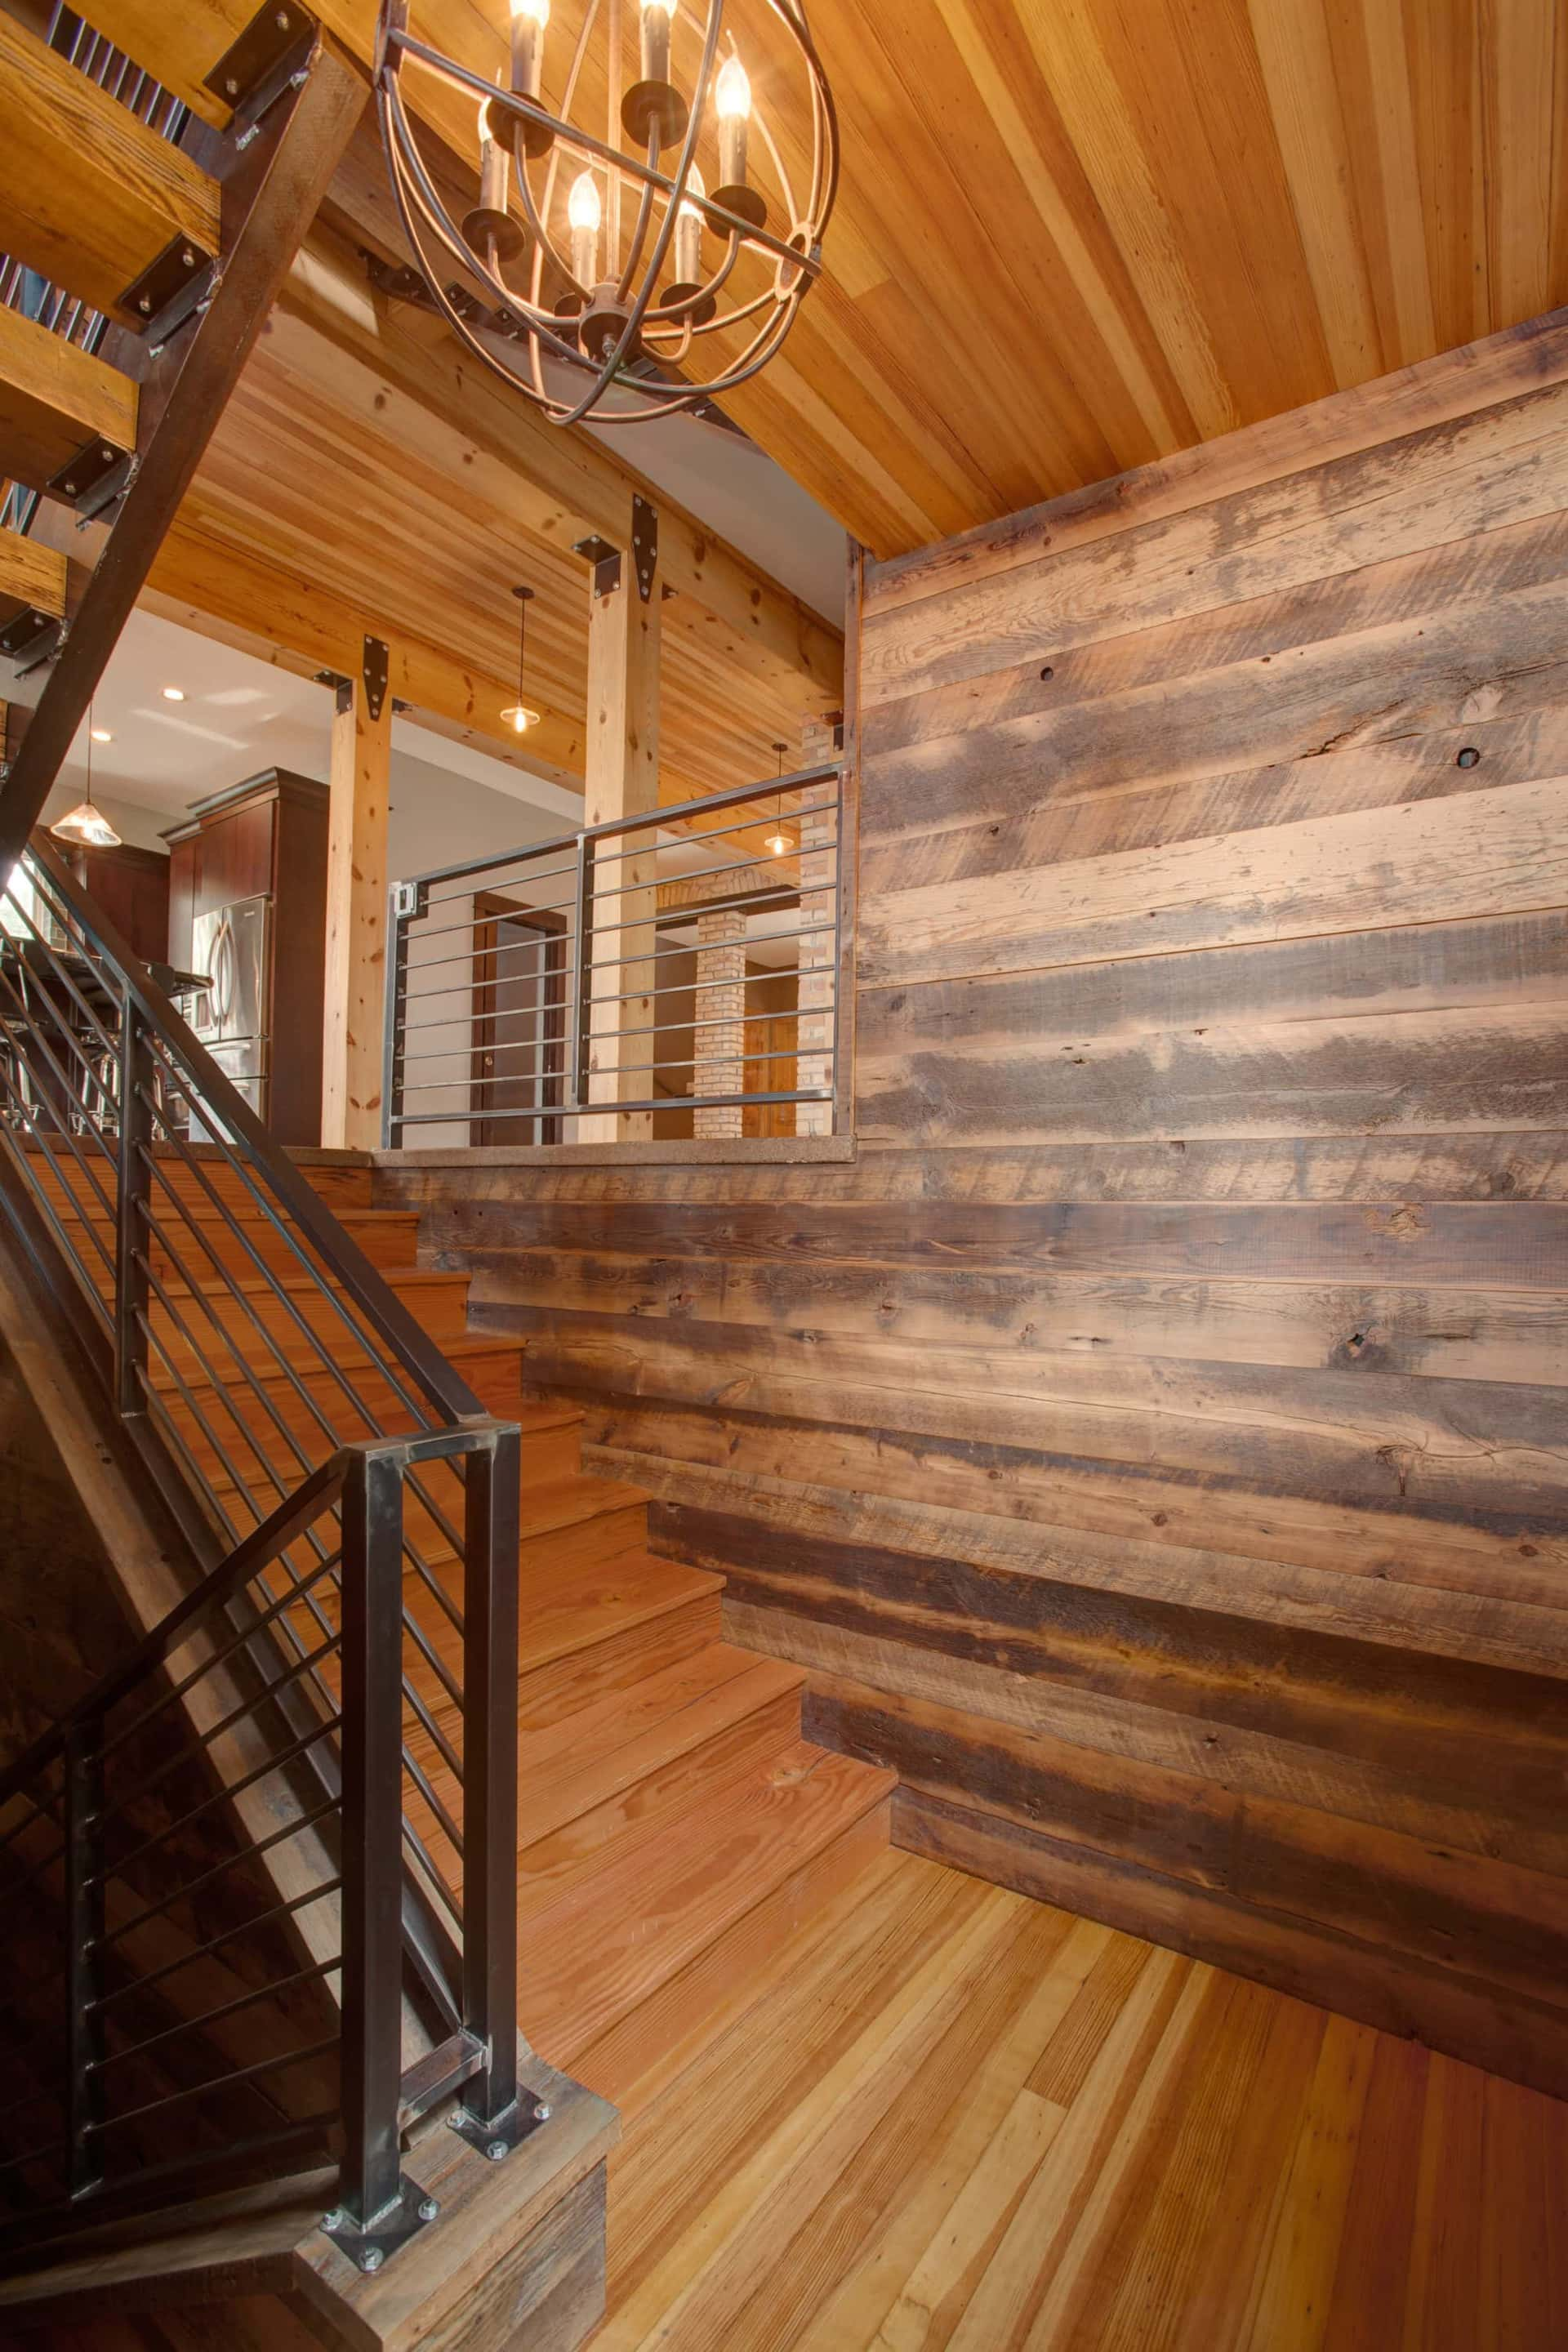 Vintage Wood Paneling: Authentic Antique Lumber